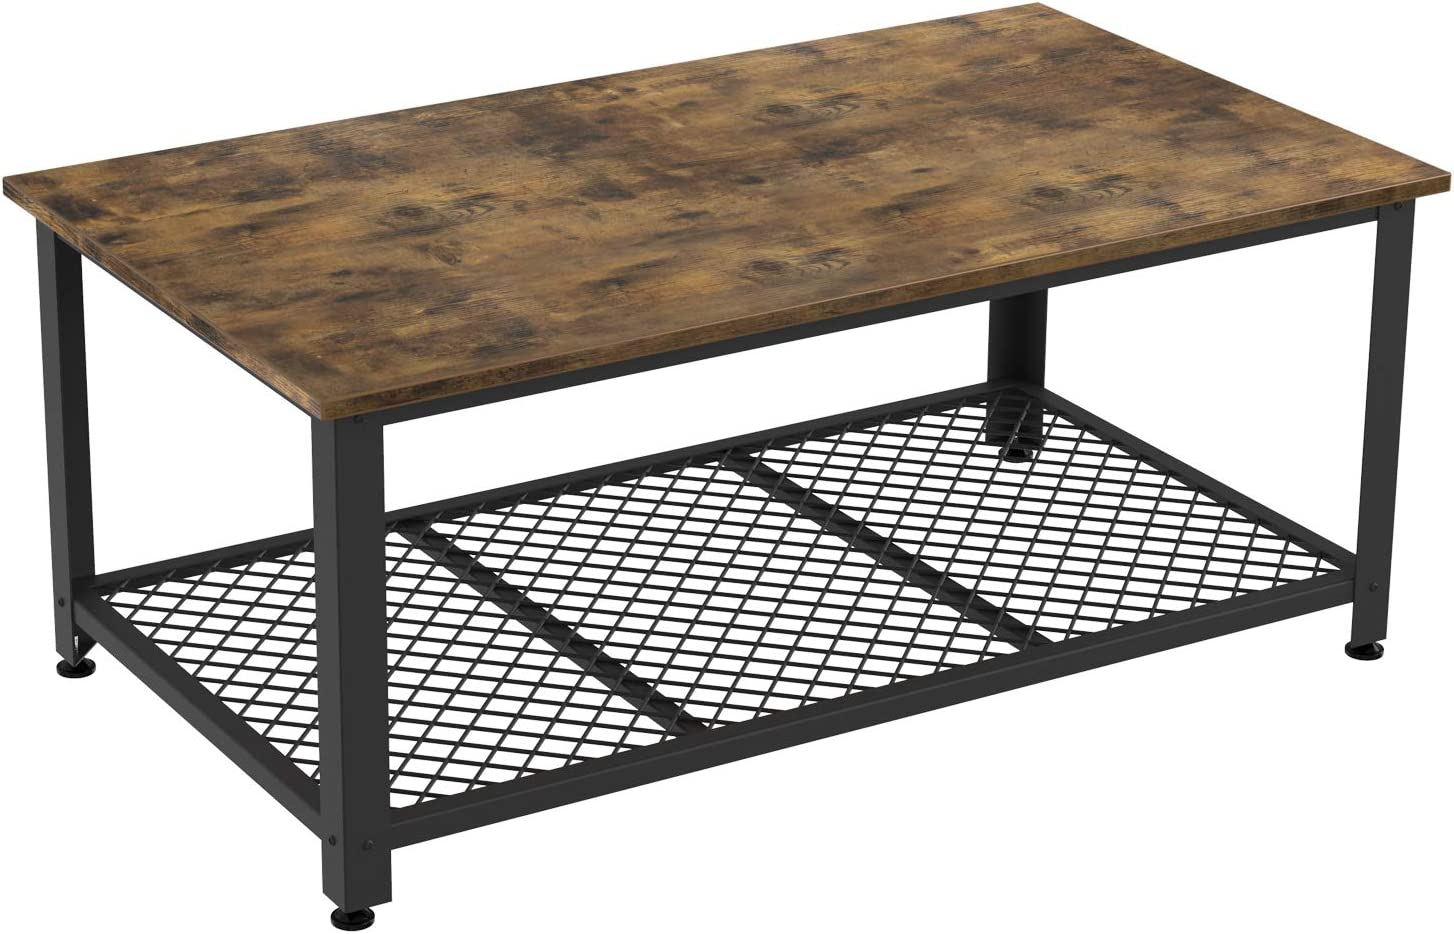 - Amazon.com: IRONCK Industrial Coffee Table For Living Room, Tea